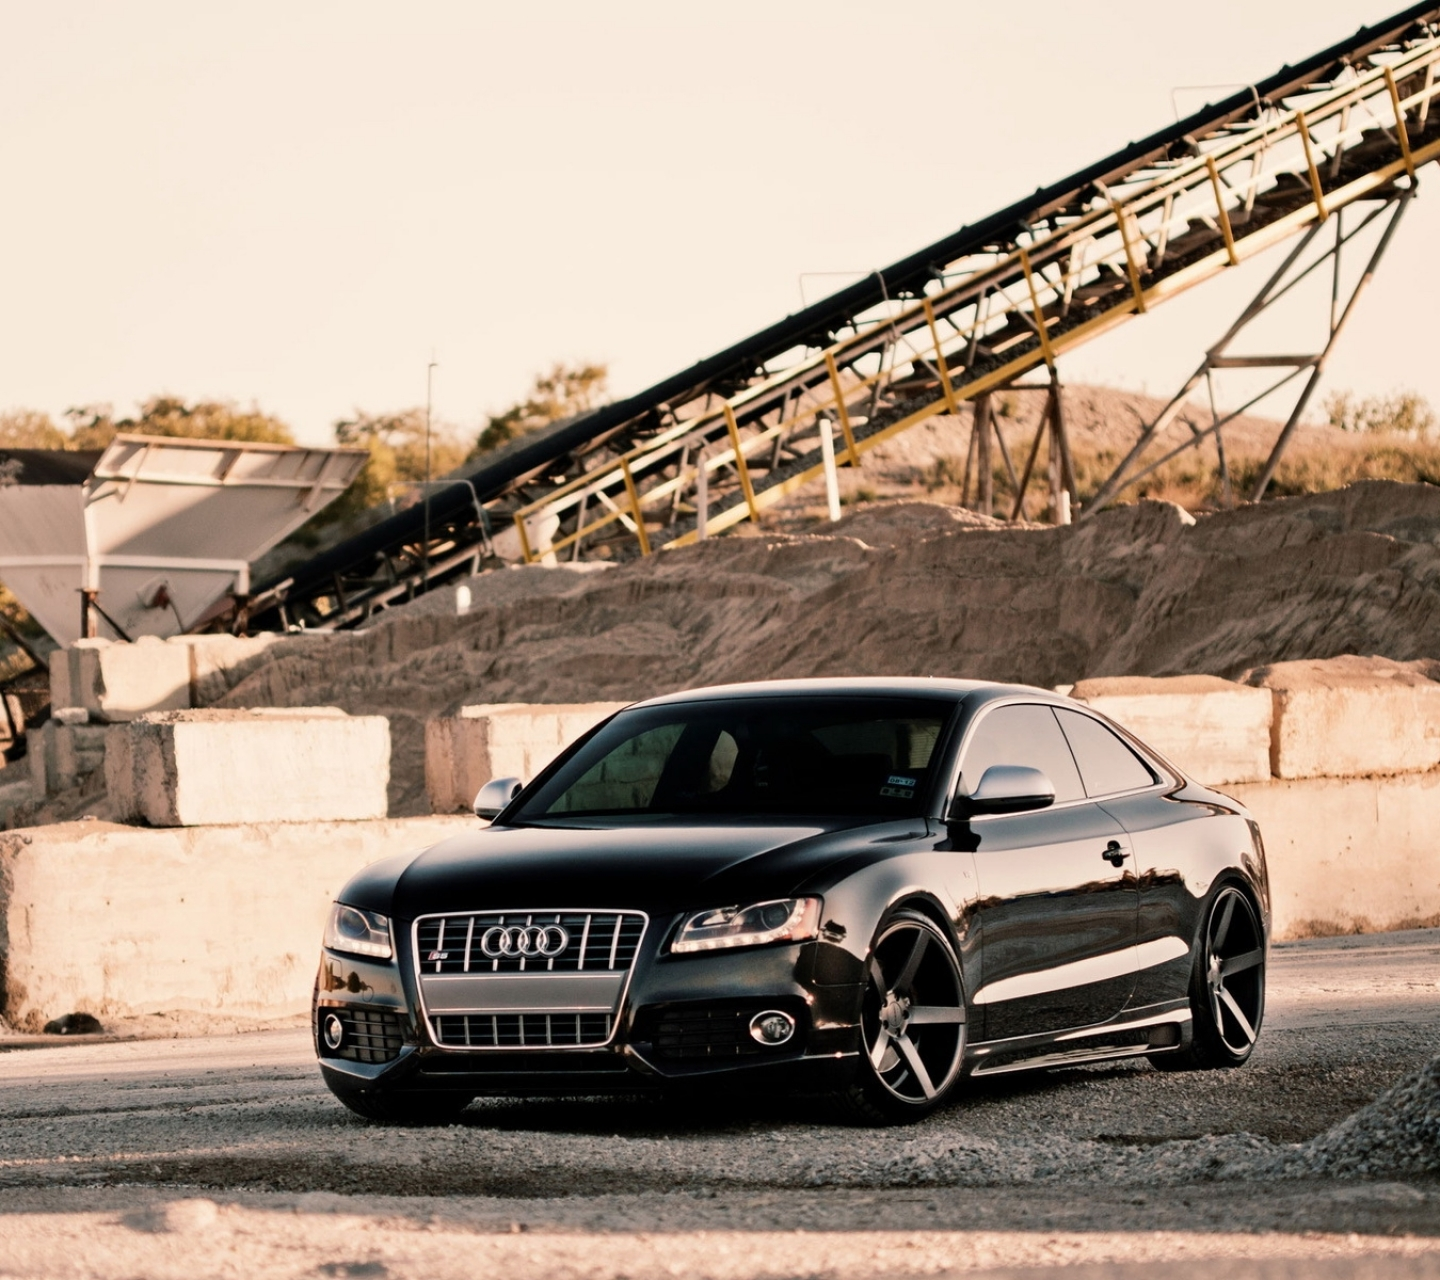 Vehiclesaudi s5 1440x1280 wallpaper id 582604 mobile abyss vehicles audi s5 1440x1280 mobile wallpaper voltagebd Image collections